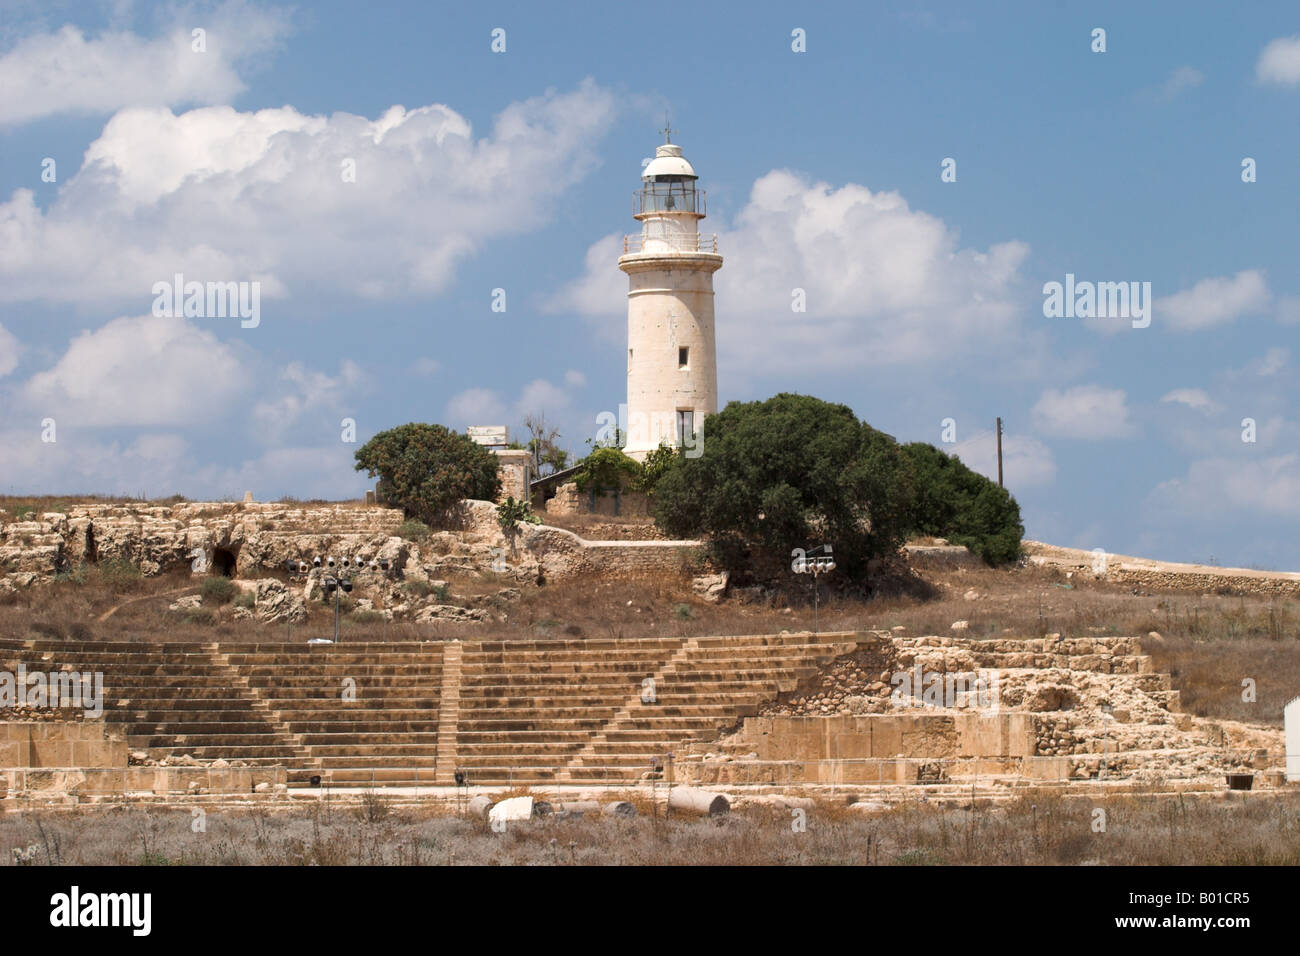 Paphos Archaeological Park Lighthouse and Ancient Odeon, Kato Paphos, Cyprus Stock Photo